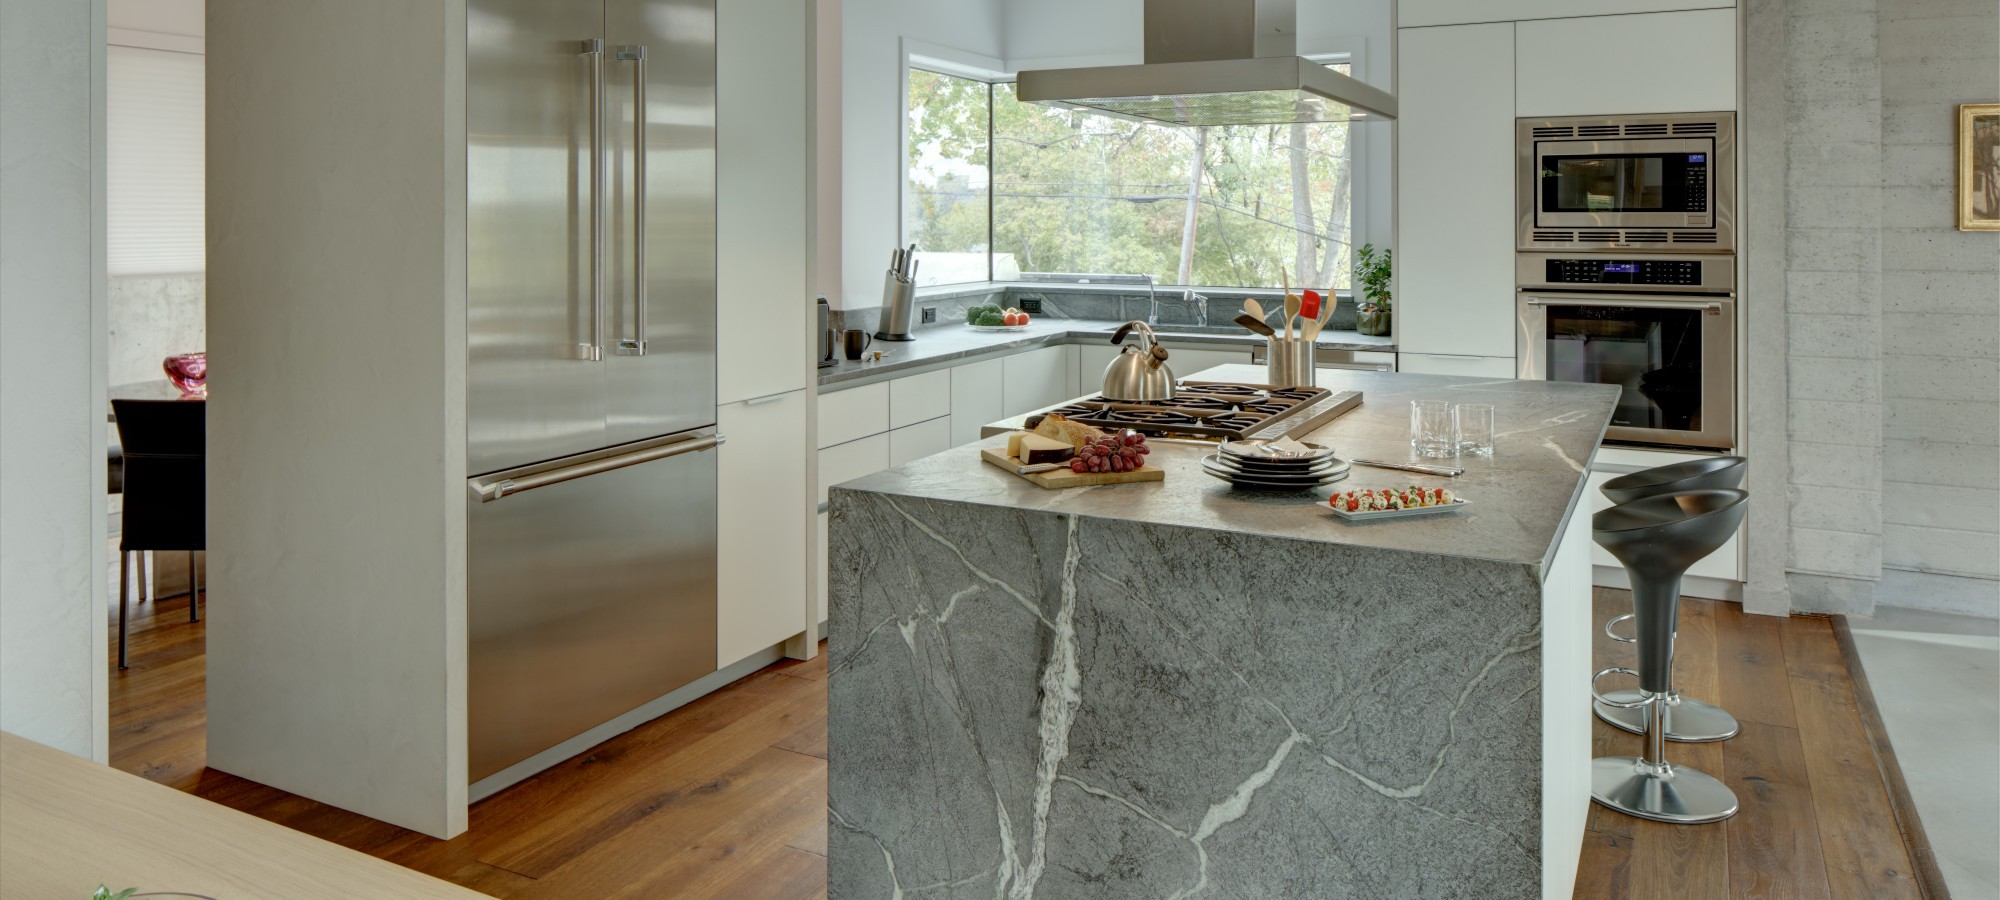 Cost Effective Designs Using Contemporary Kitchen Cabinets